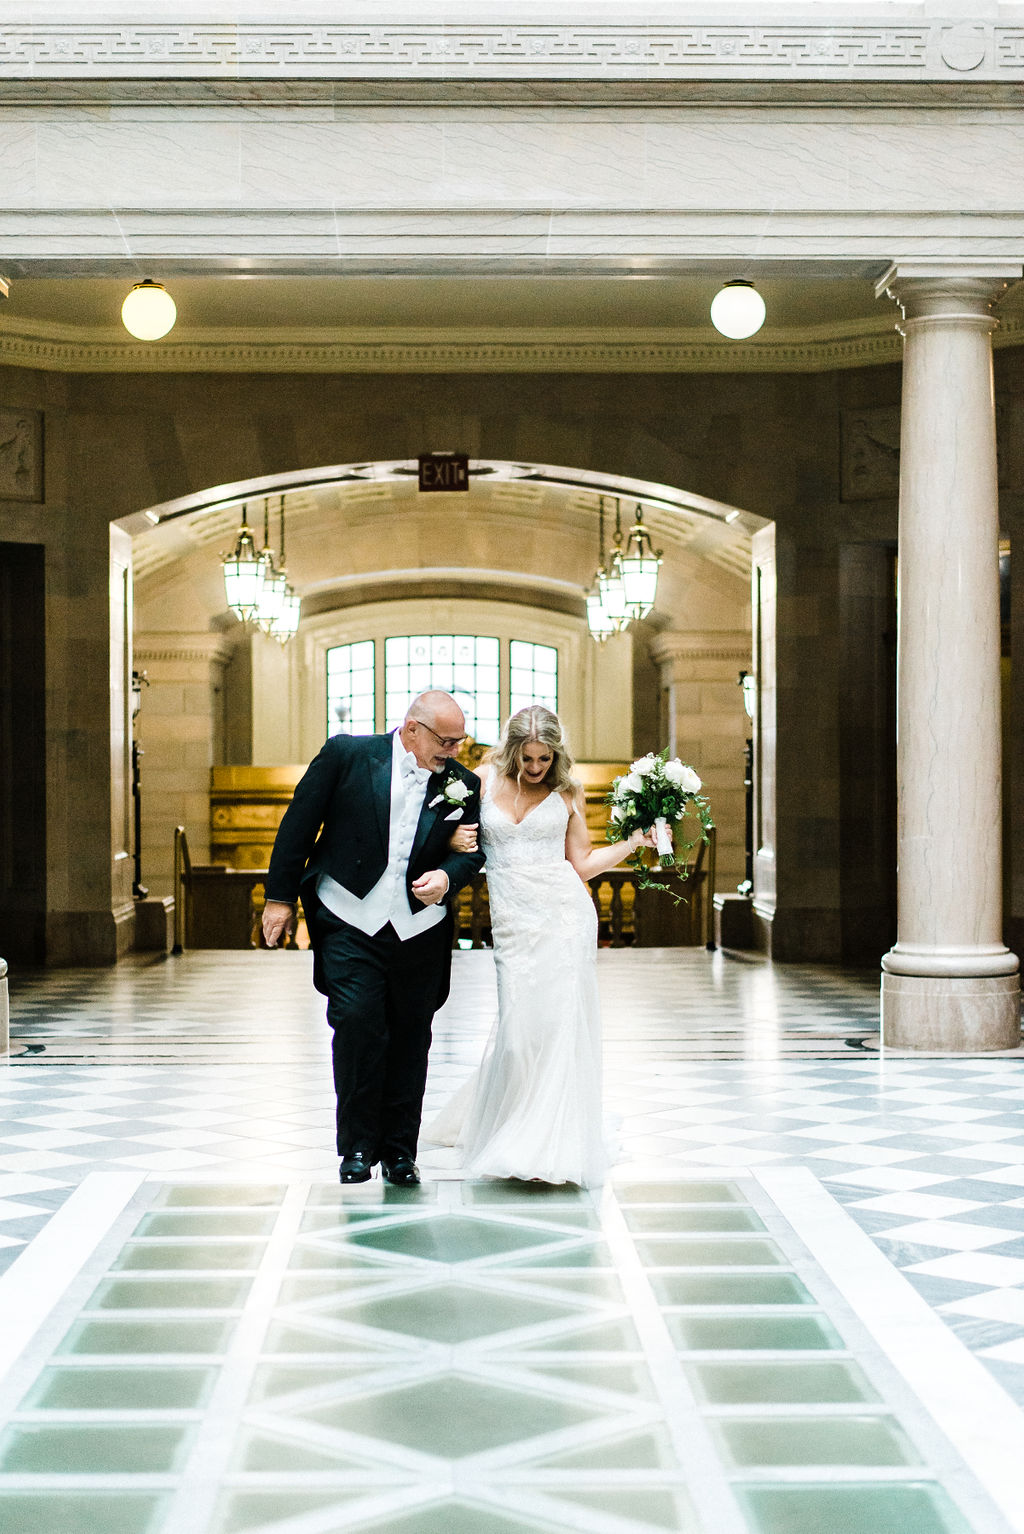 Bride dancing down the aisle at her great gatsby themed wedding - Pearl Weddings & Events